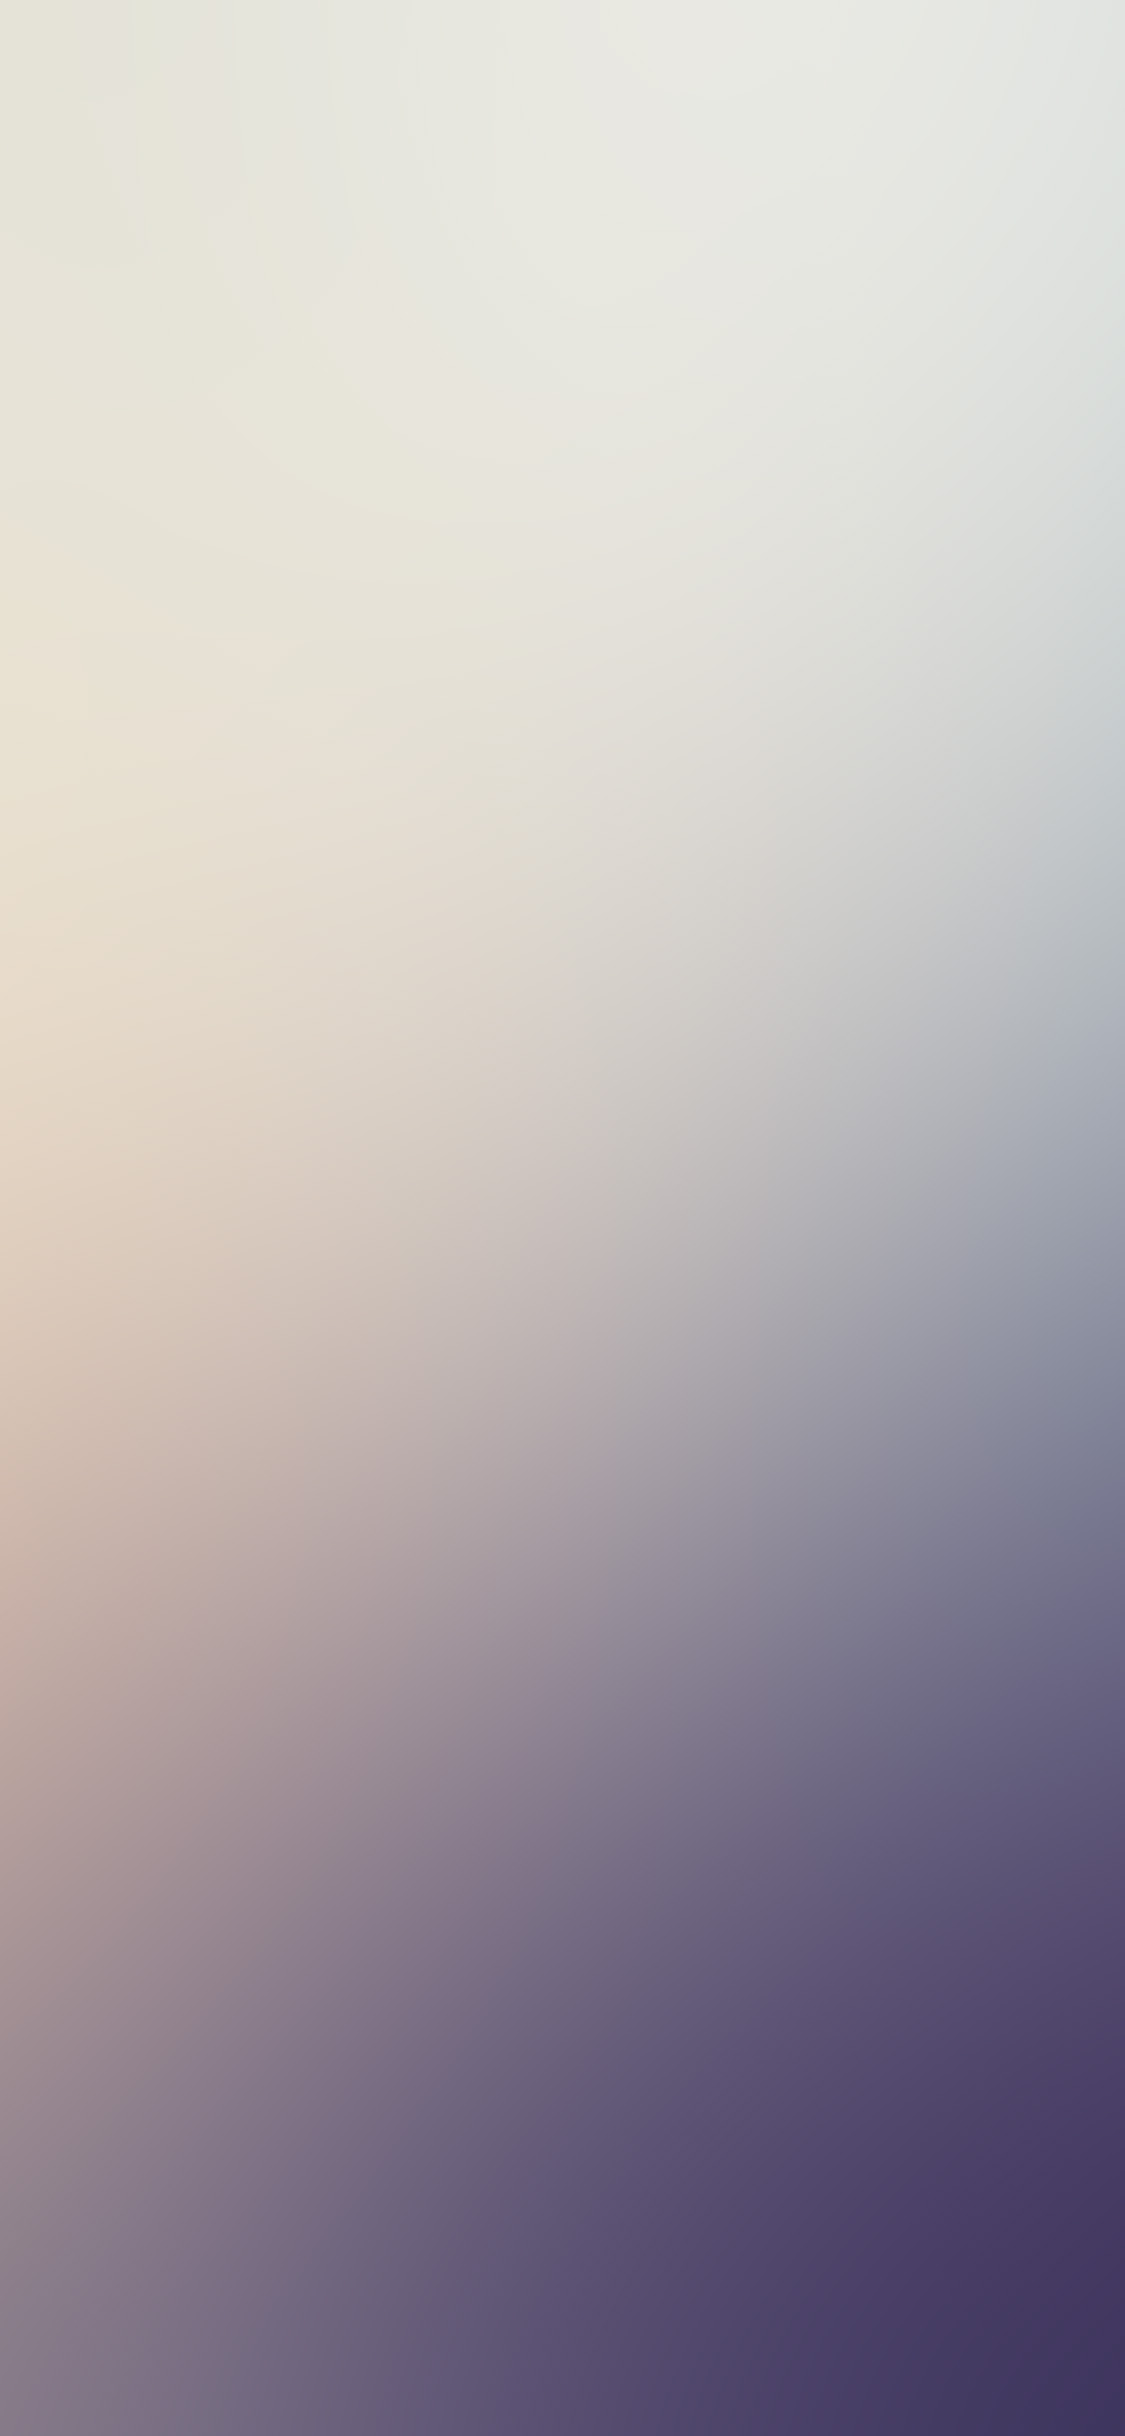 iPhonexpapers.com-Apple-iPhone-wallpaper-sm84-evening-night-picnic-blur-gradation